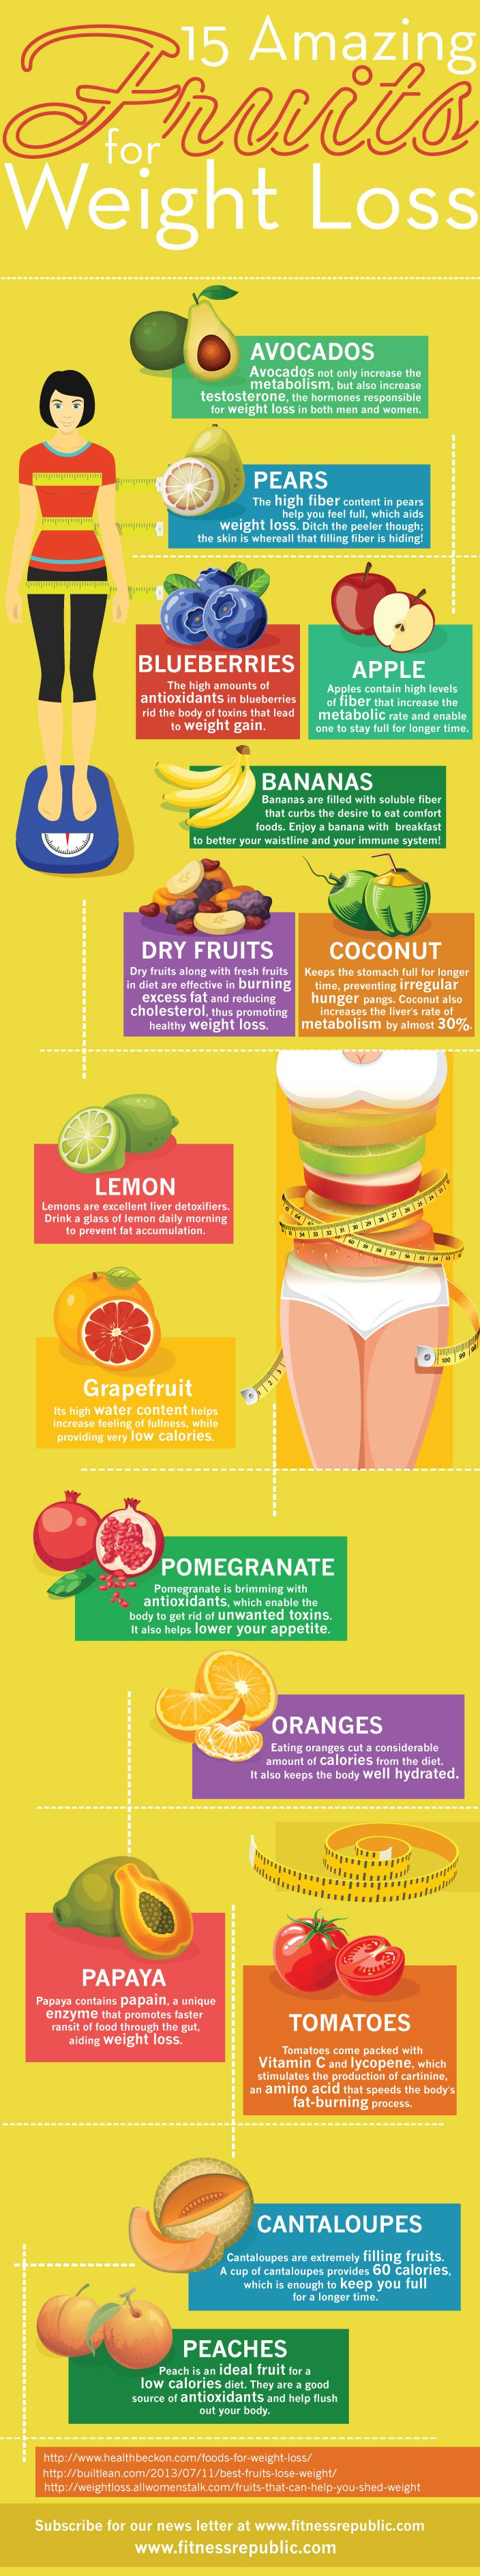 15 Amazing Fruits for Weight Loss #infographic